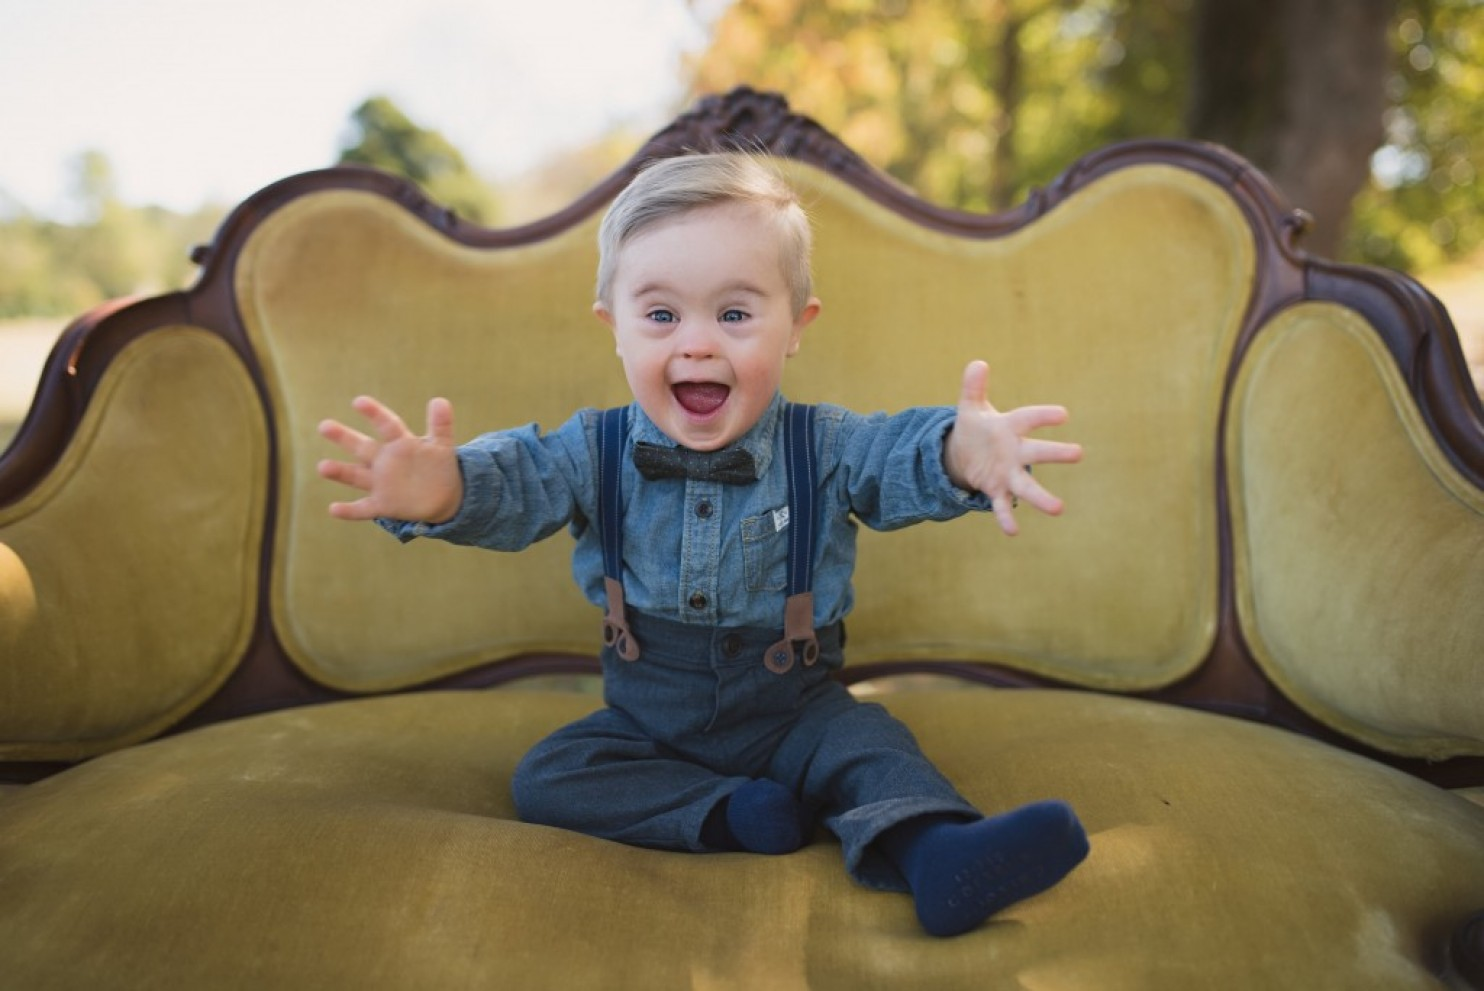 Asher Nash 15-month-old boy with Down Syndrome rejected by modeling agency